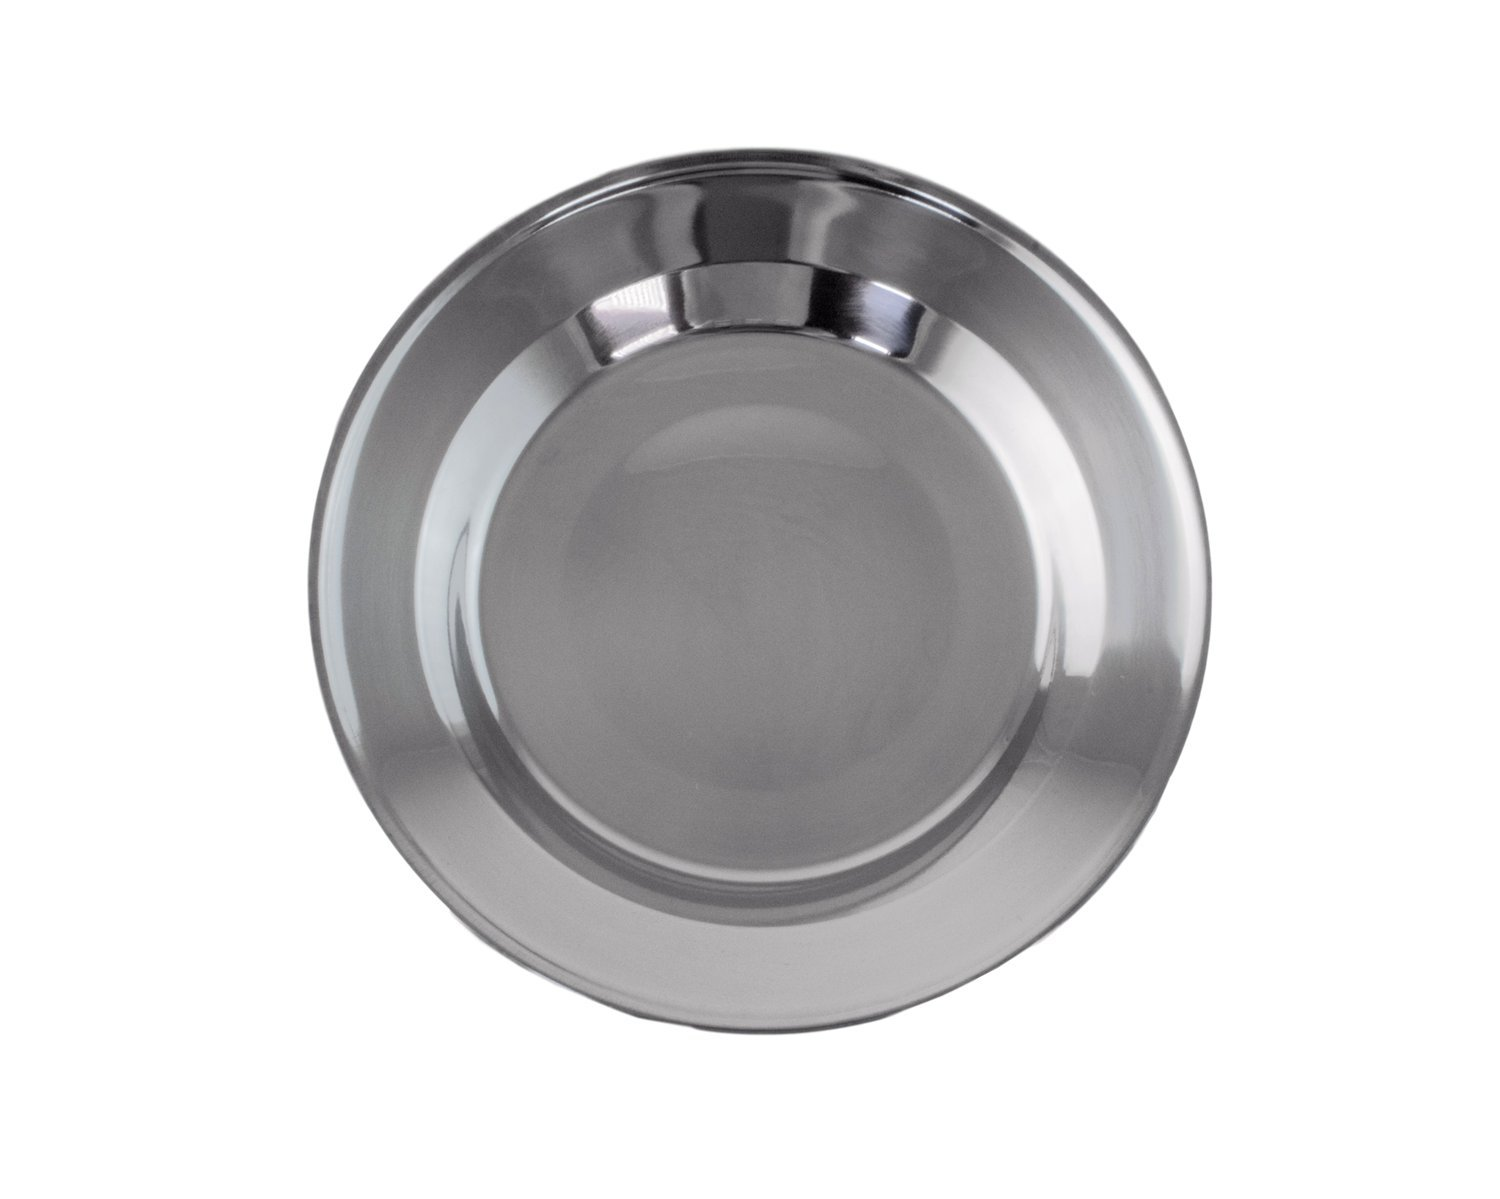 welltree Stainless Steel Plate/Dish Set - Best for Backpacker or Camping, Ideal for Toddlers and Kids